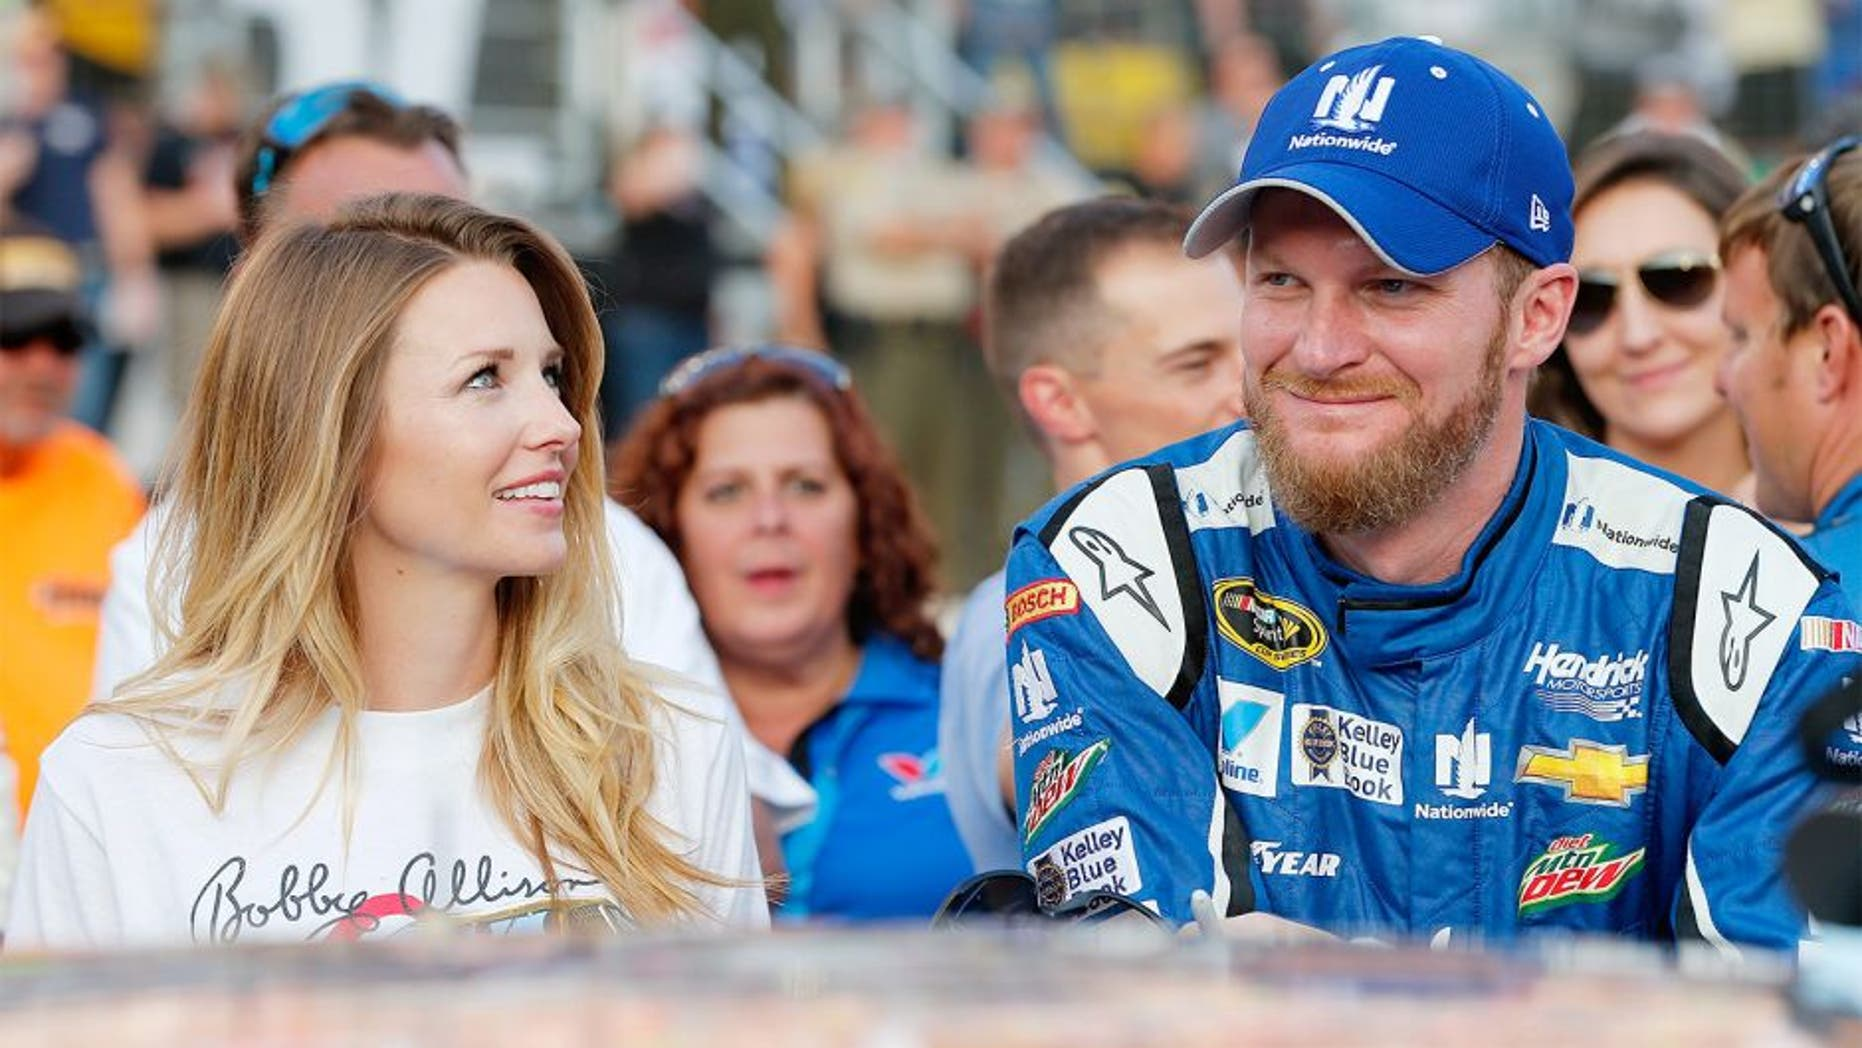 BRISTOL, TN - AUGUST 22: Dale Earnhardt Jr., driver of the #88 Nationwide Chevrolet, stands on the grid with his fiance, Amy Reimann, prior to the NASCAR Sprint Cup Series IRWIN Tools Night Race at Bristol Motor Speedway on August 22, 2015 in Bristol, Tennessee. (Photo by Brian Lawdermilk/Getty Images)